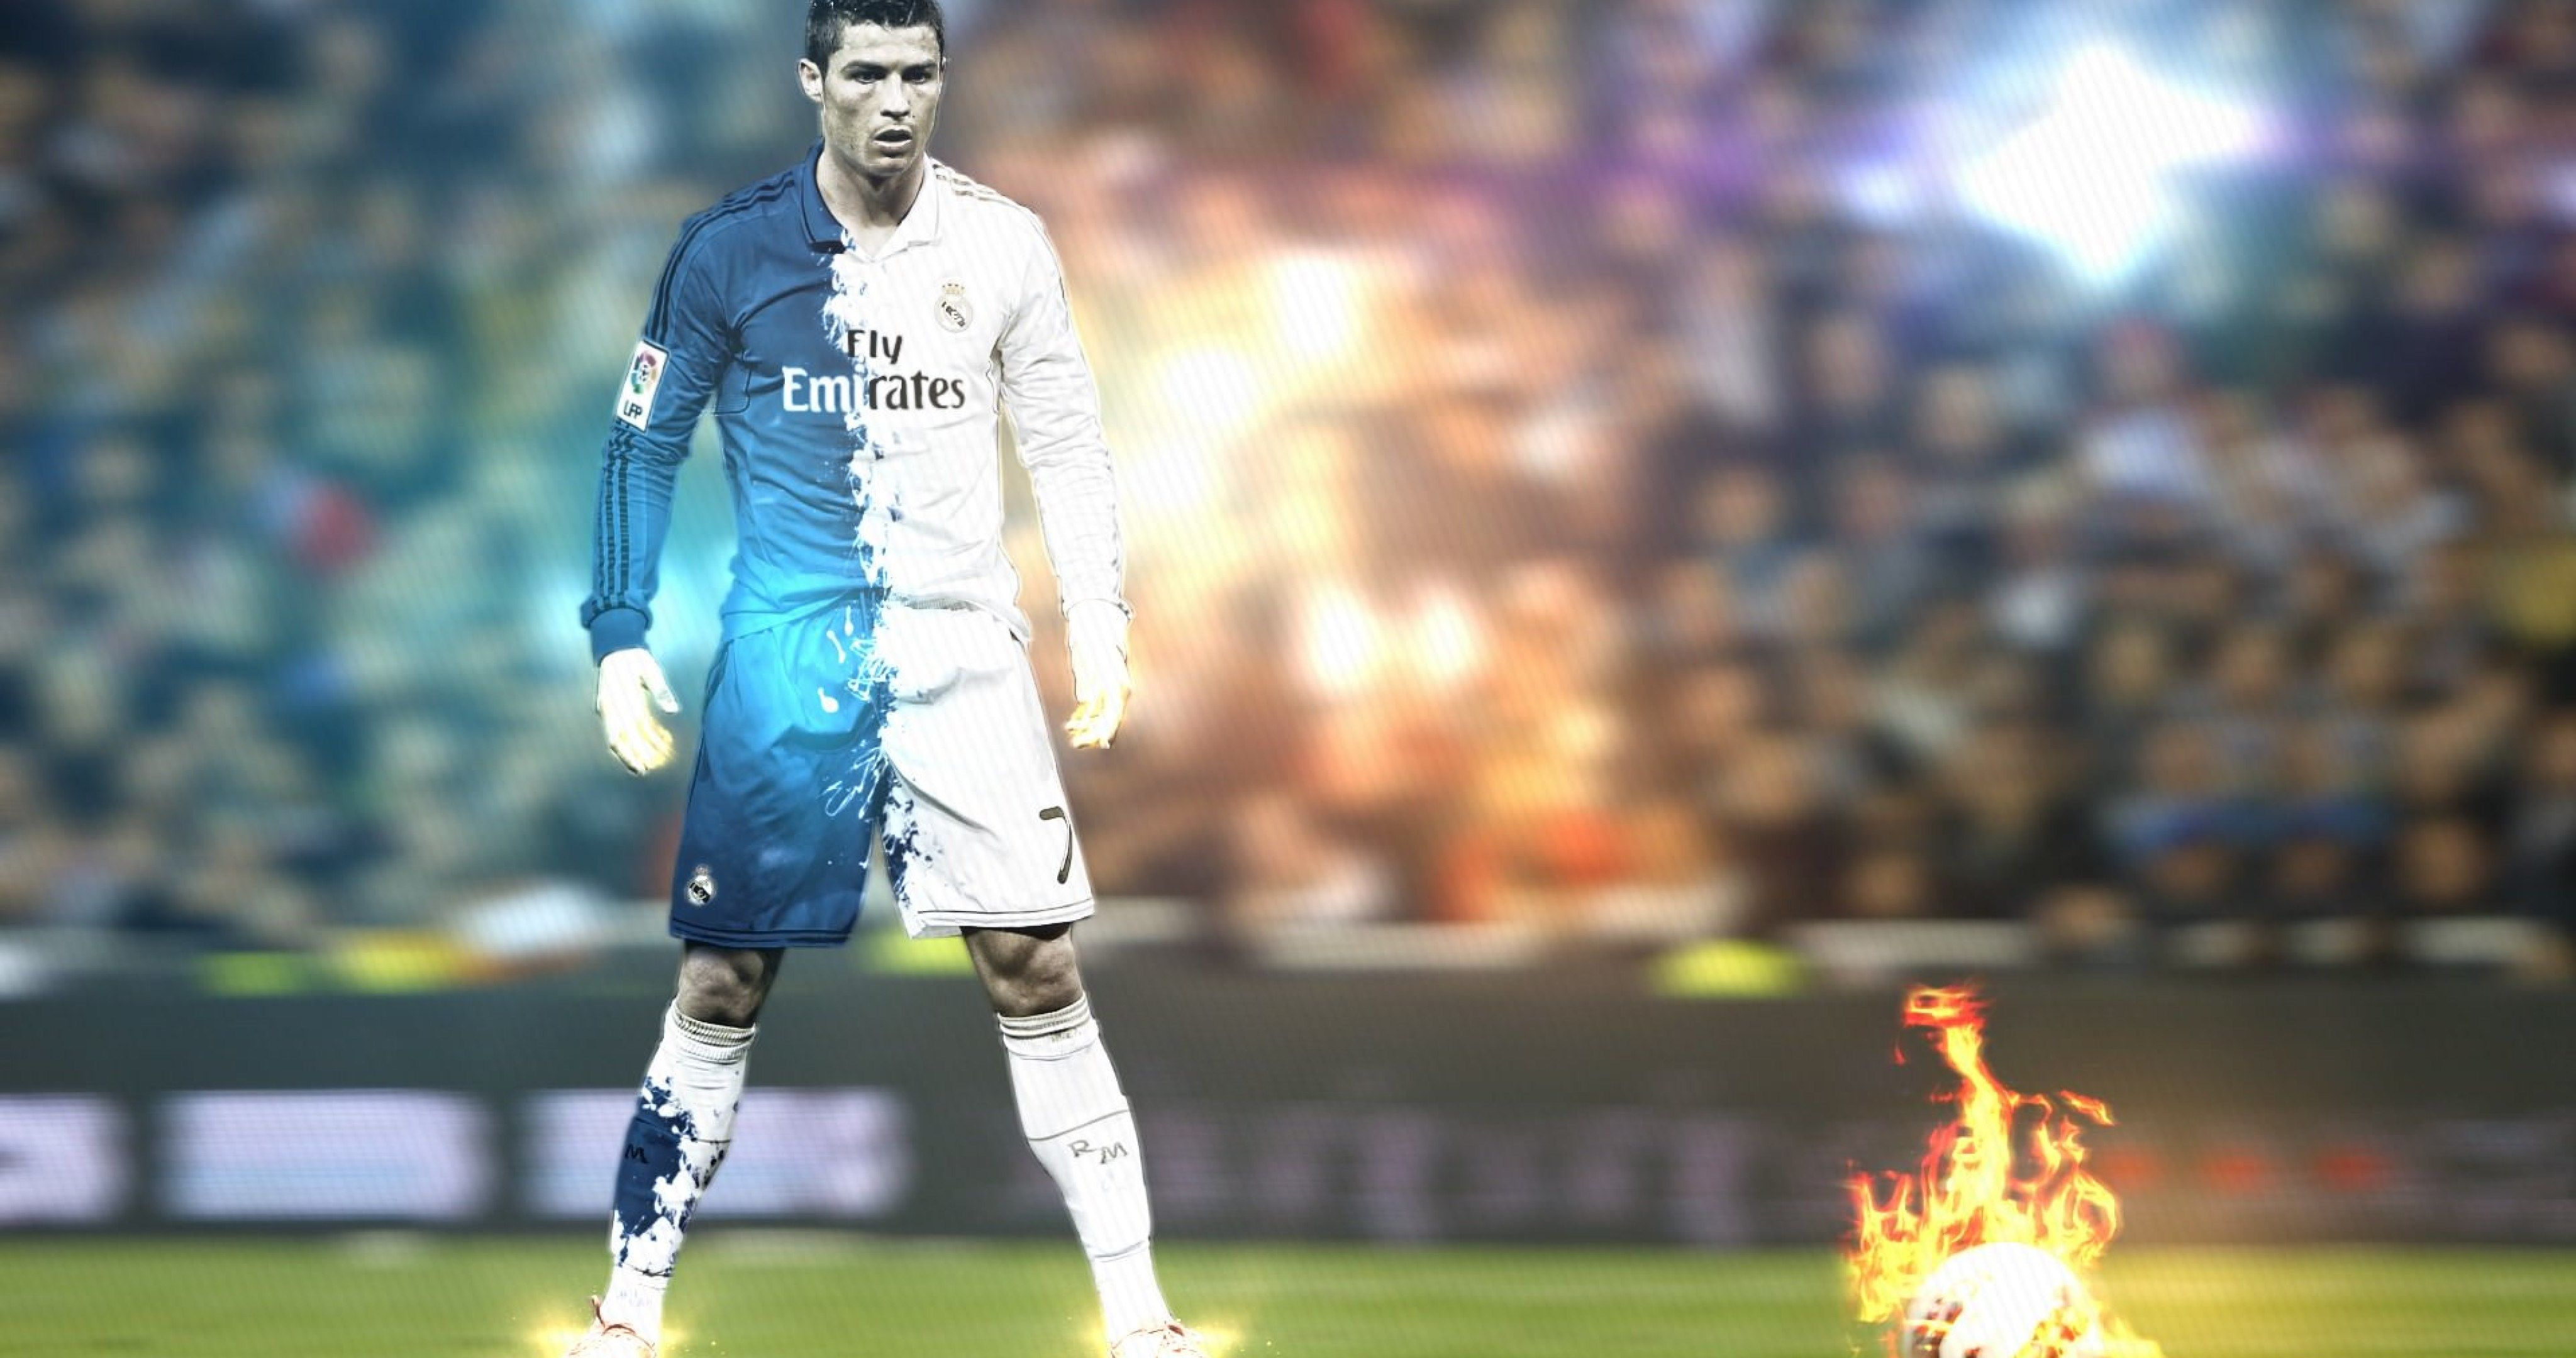 fly emirates cristiano ronaldo 4k ultra hd wallpaper | ololoshenka